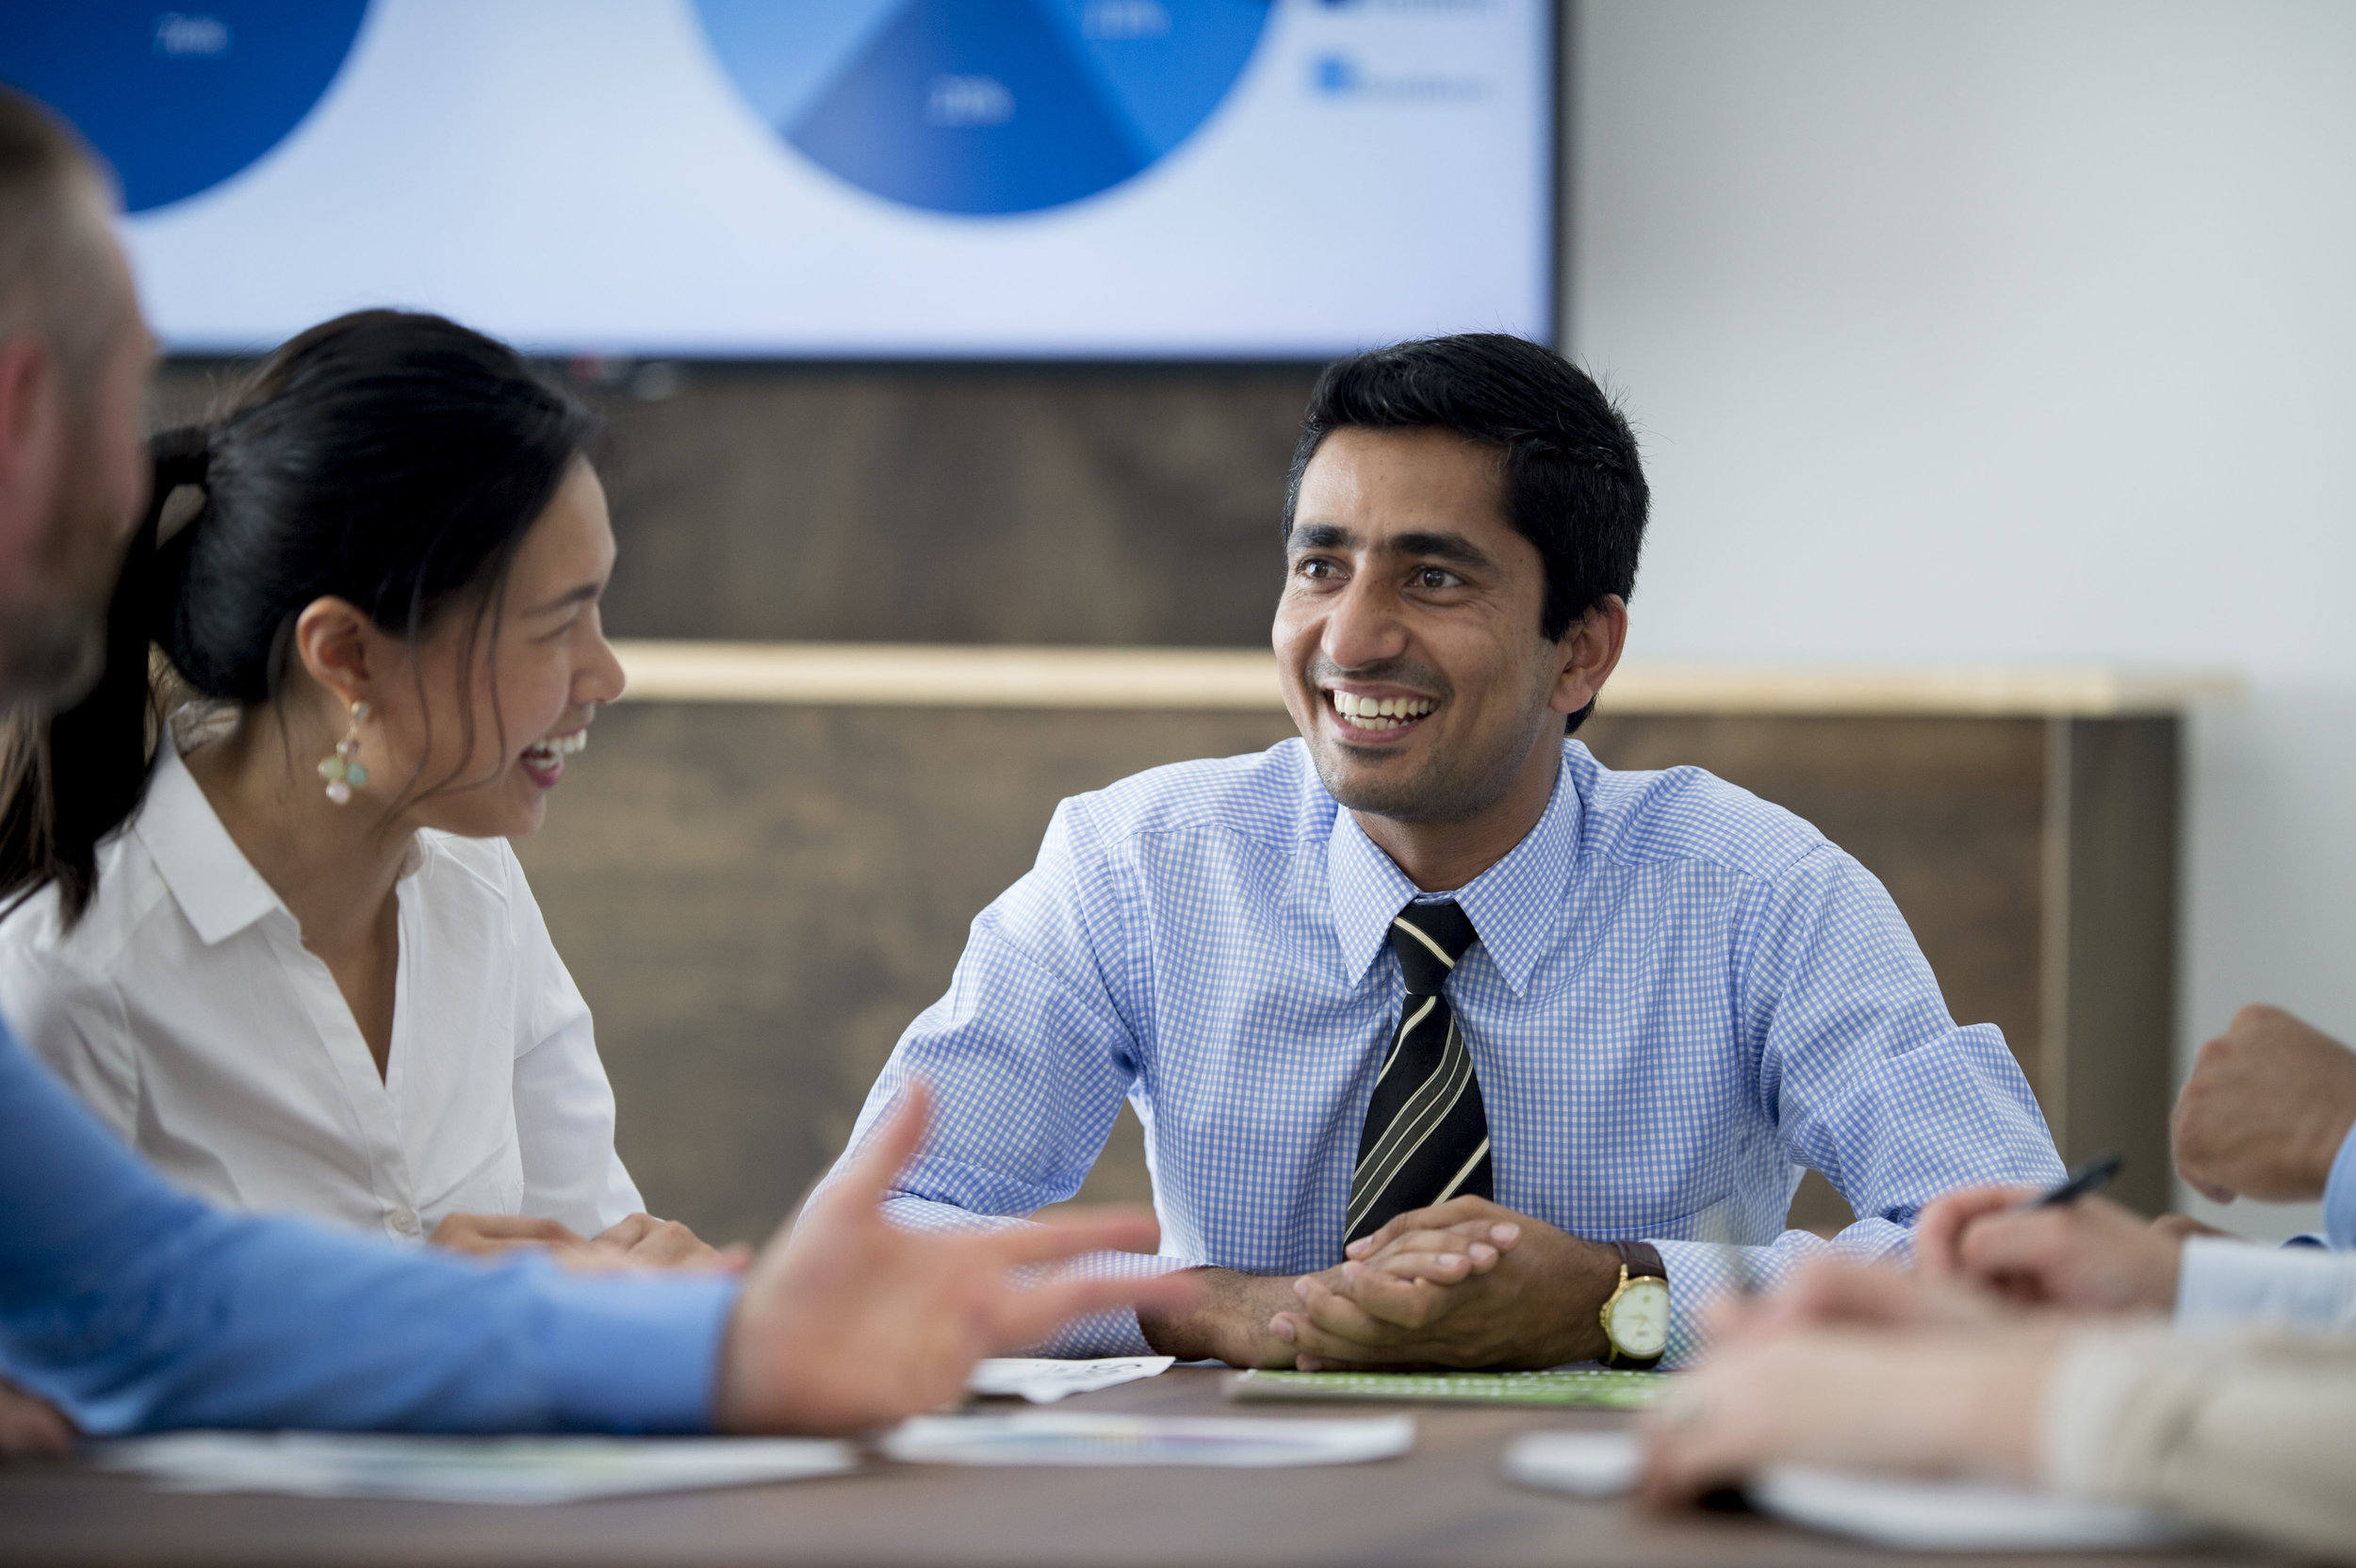 Sussex_Business_School_brand_images_selection_6.jpg